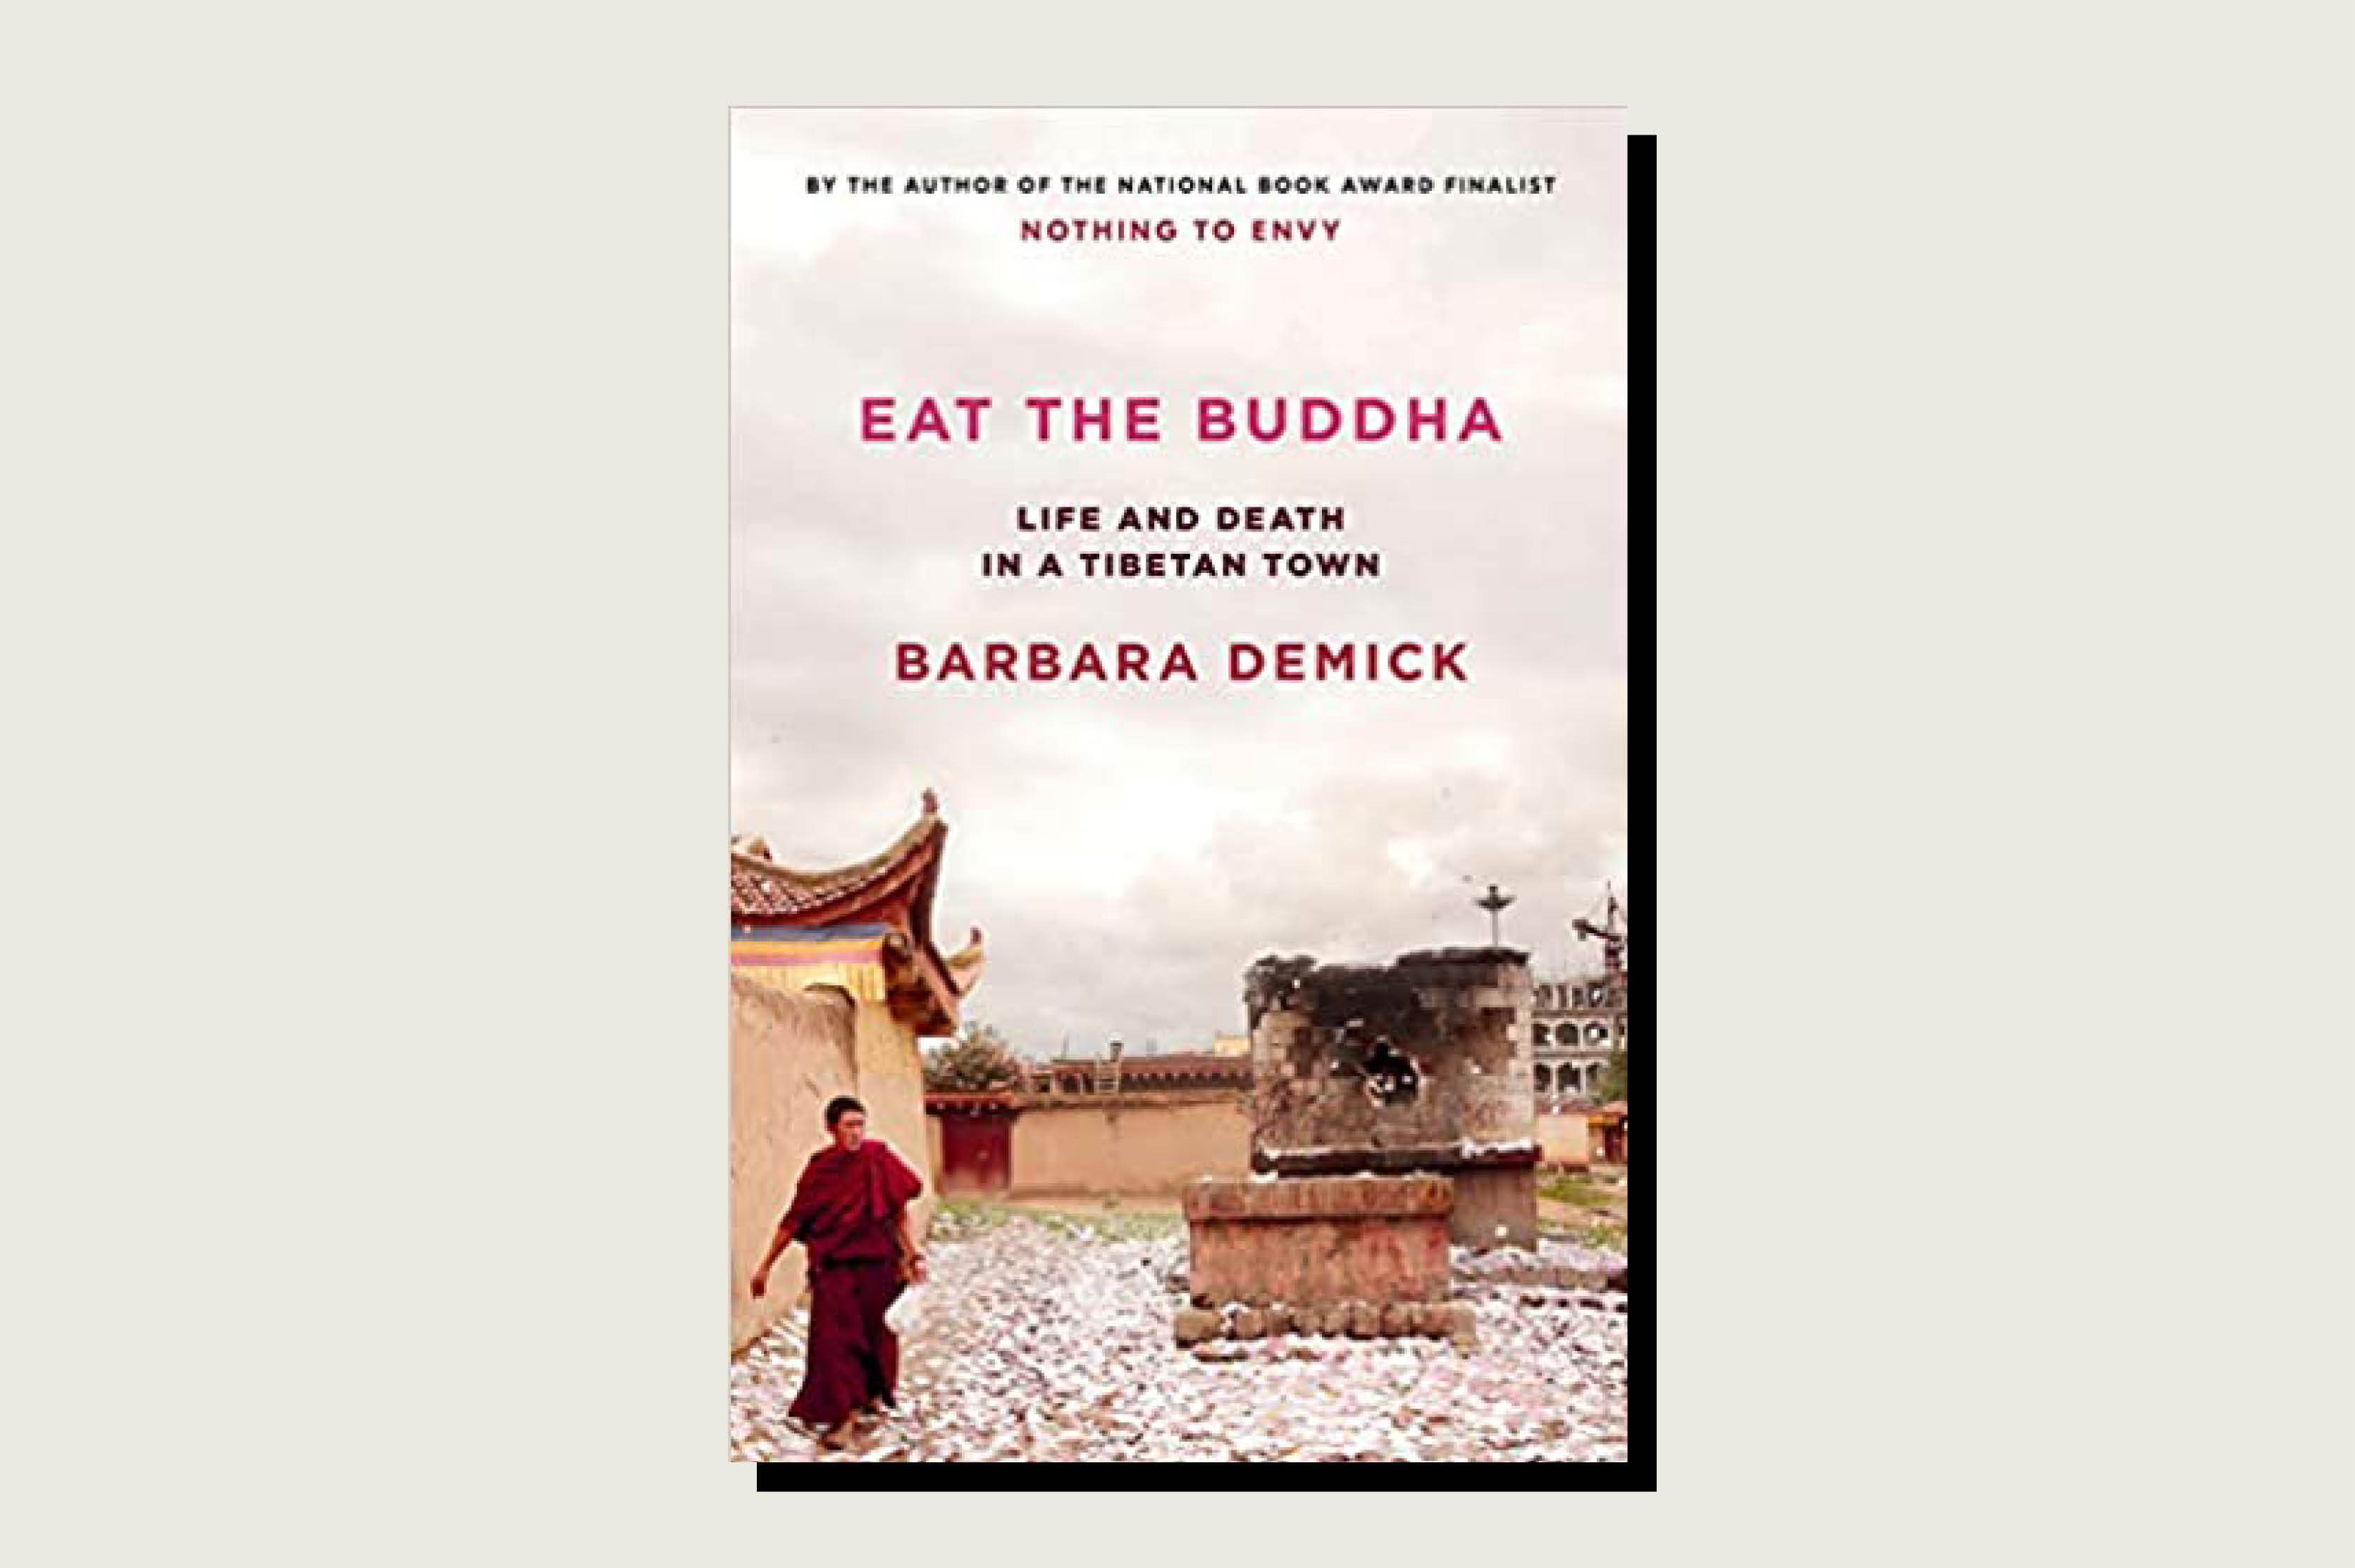 Eat the Buddha: Life and Death in a Tibetan Town, Barbara Demick, Random House, July 28, 2020.